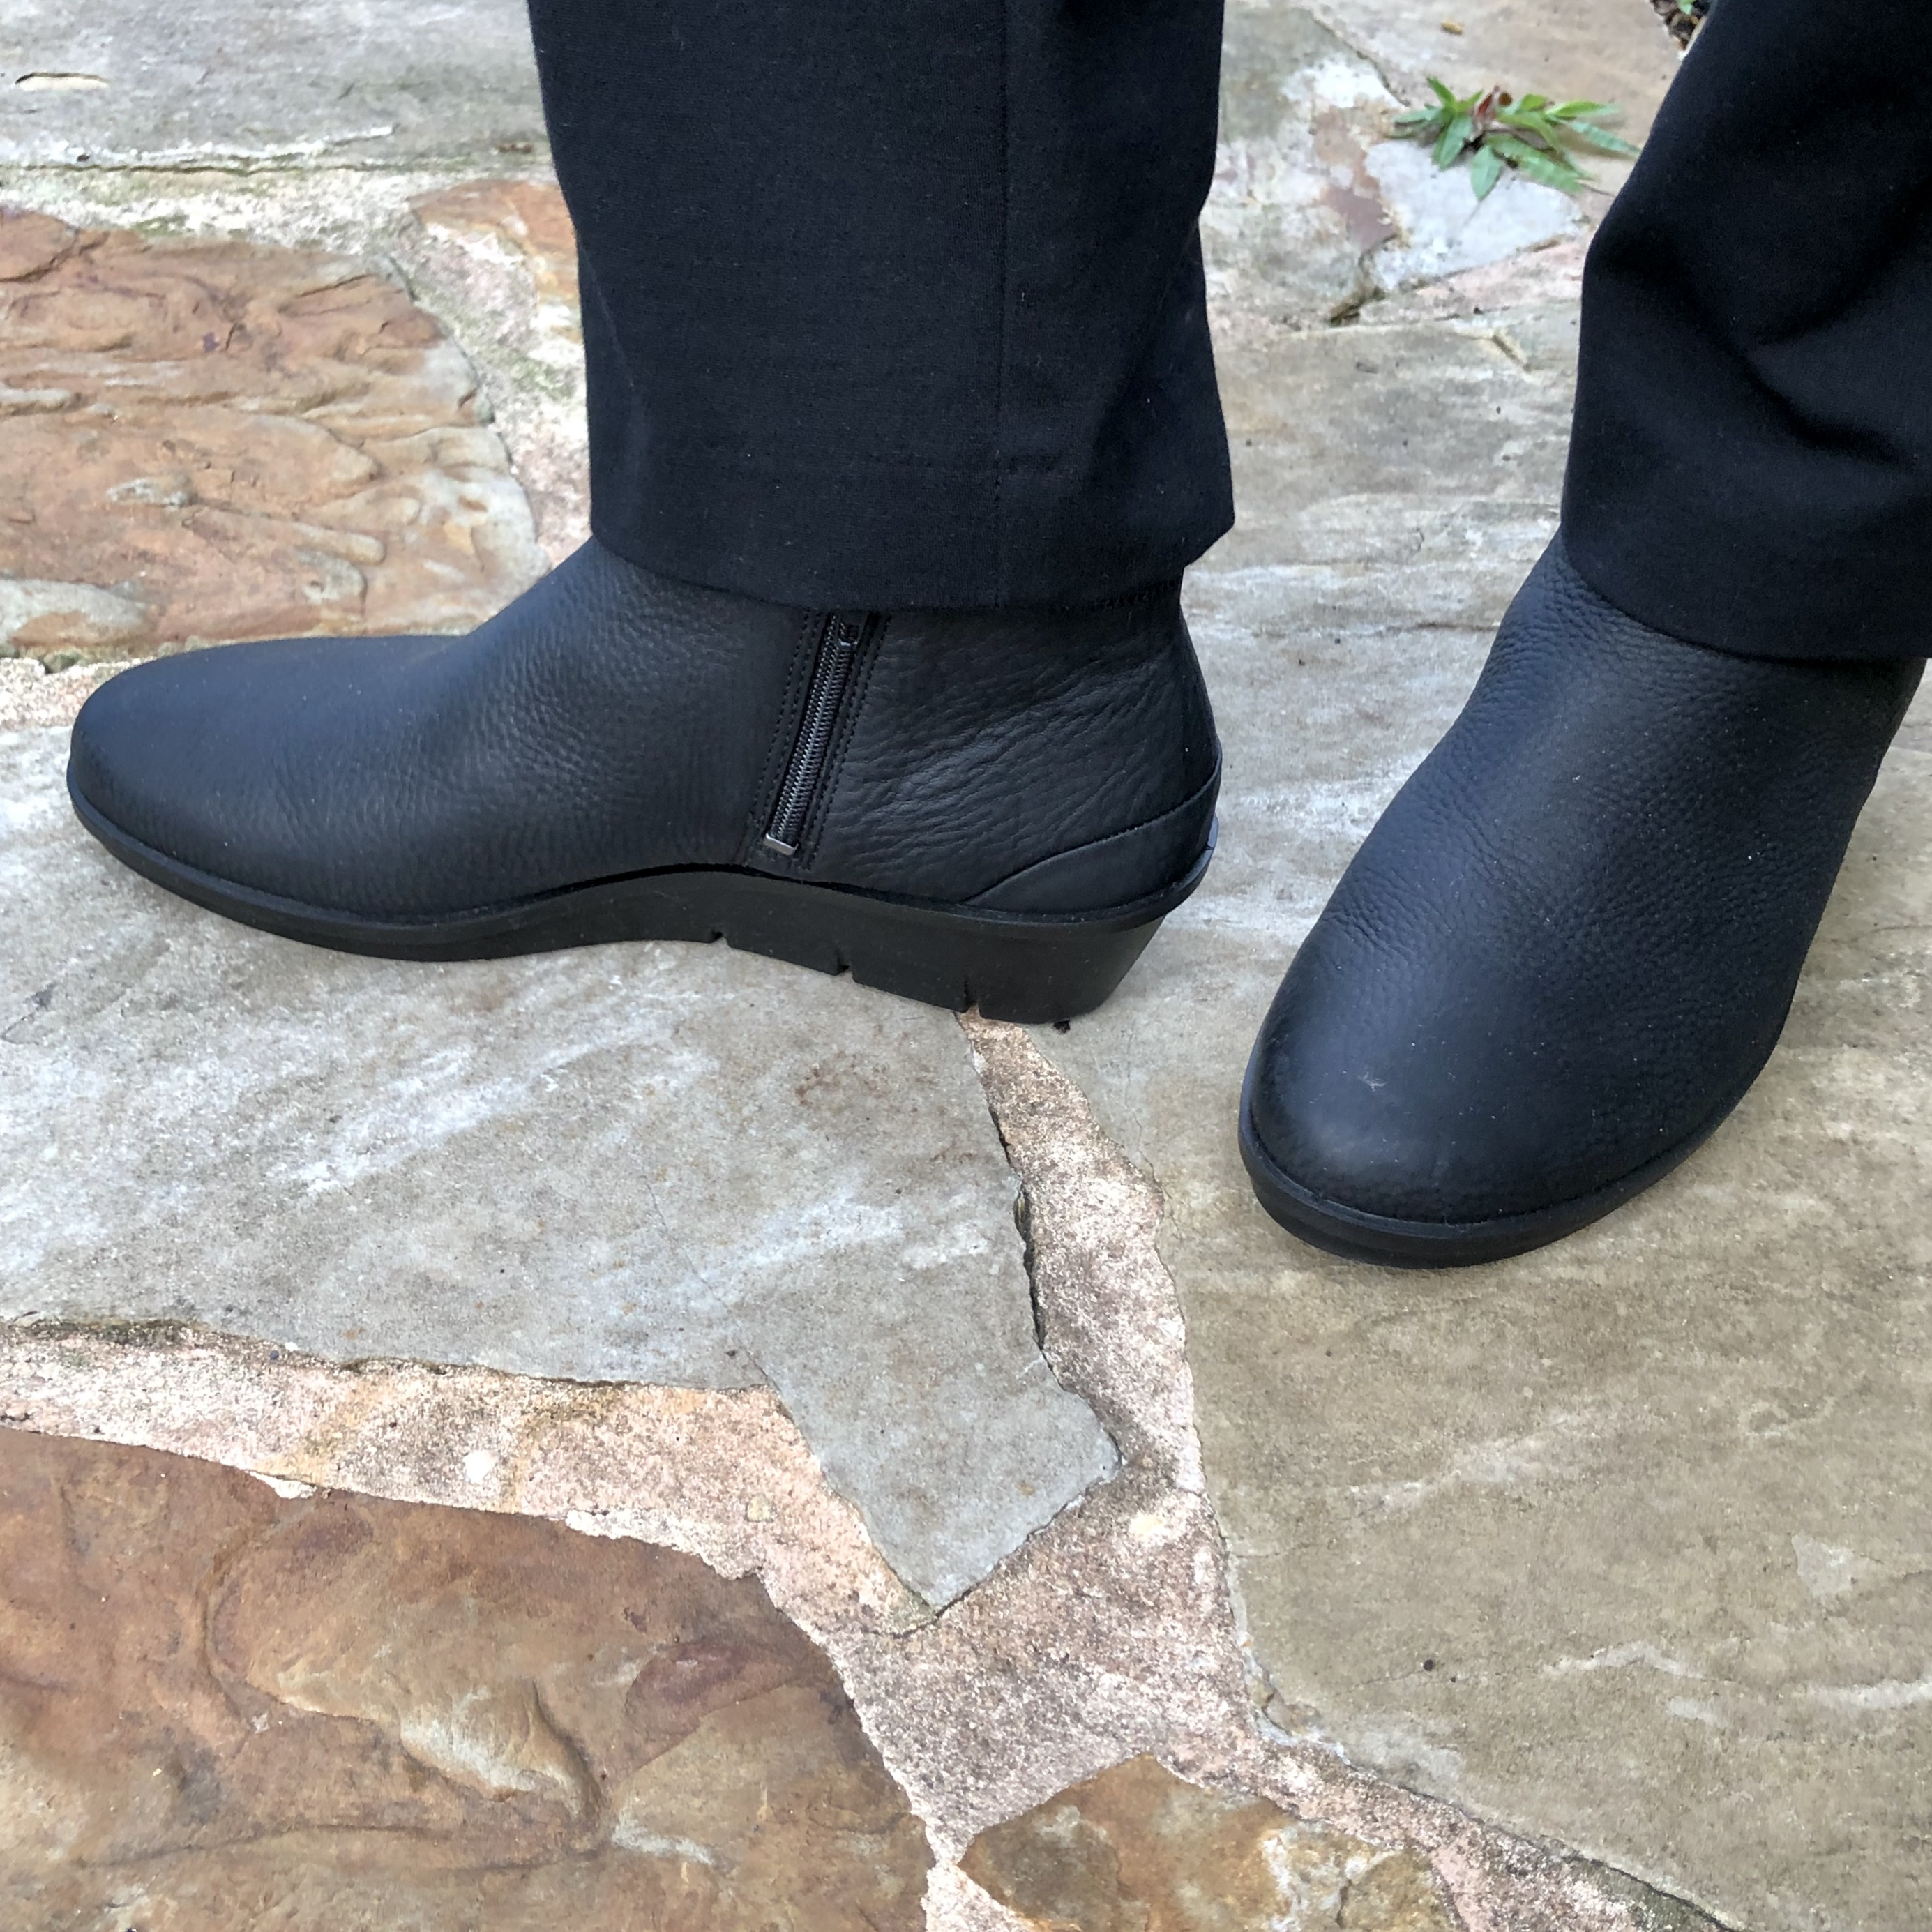 My New ECCO Boots plus Special Savings